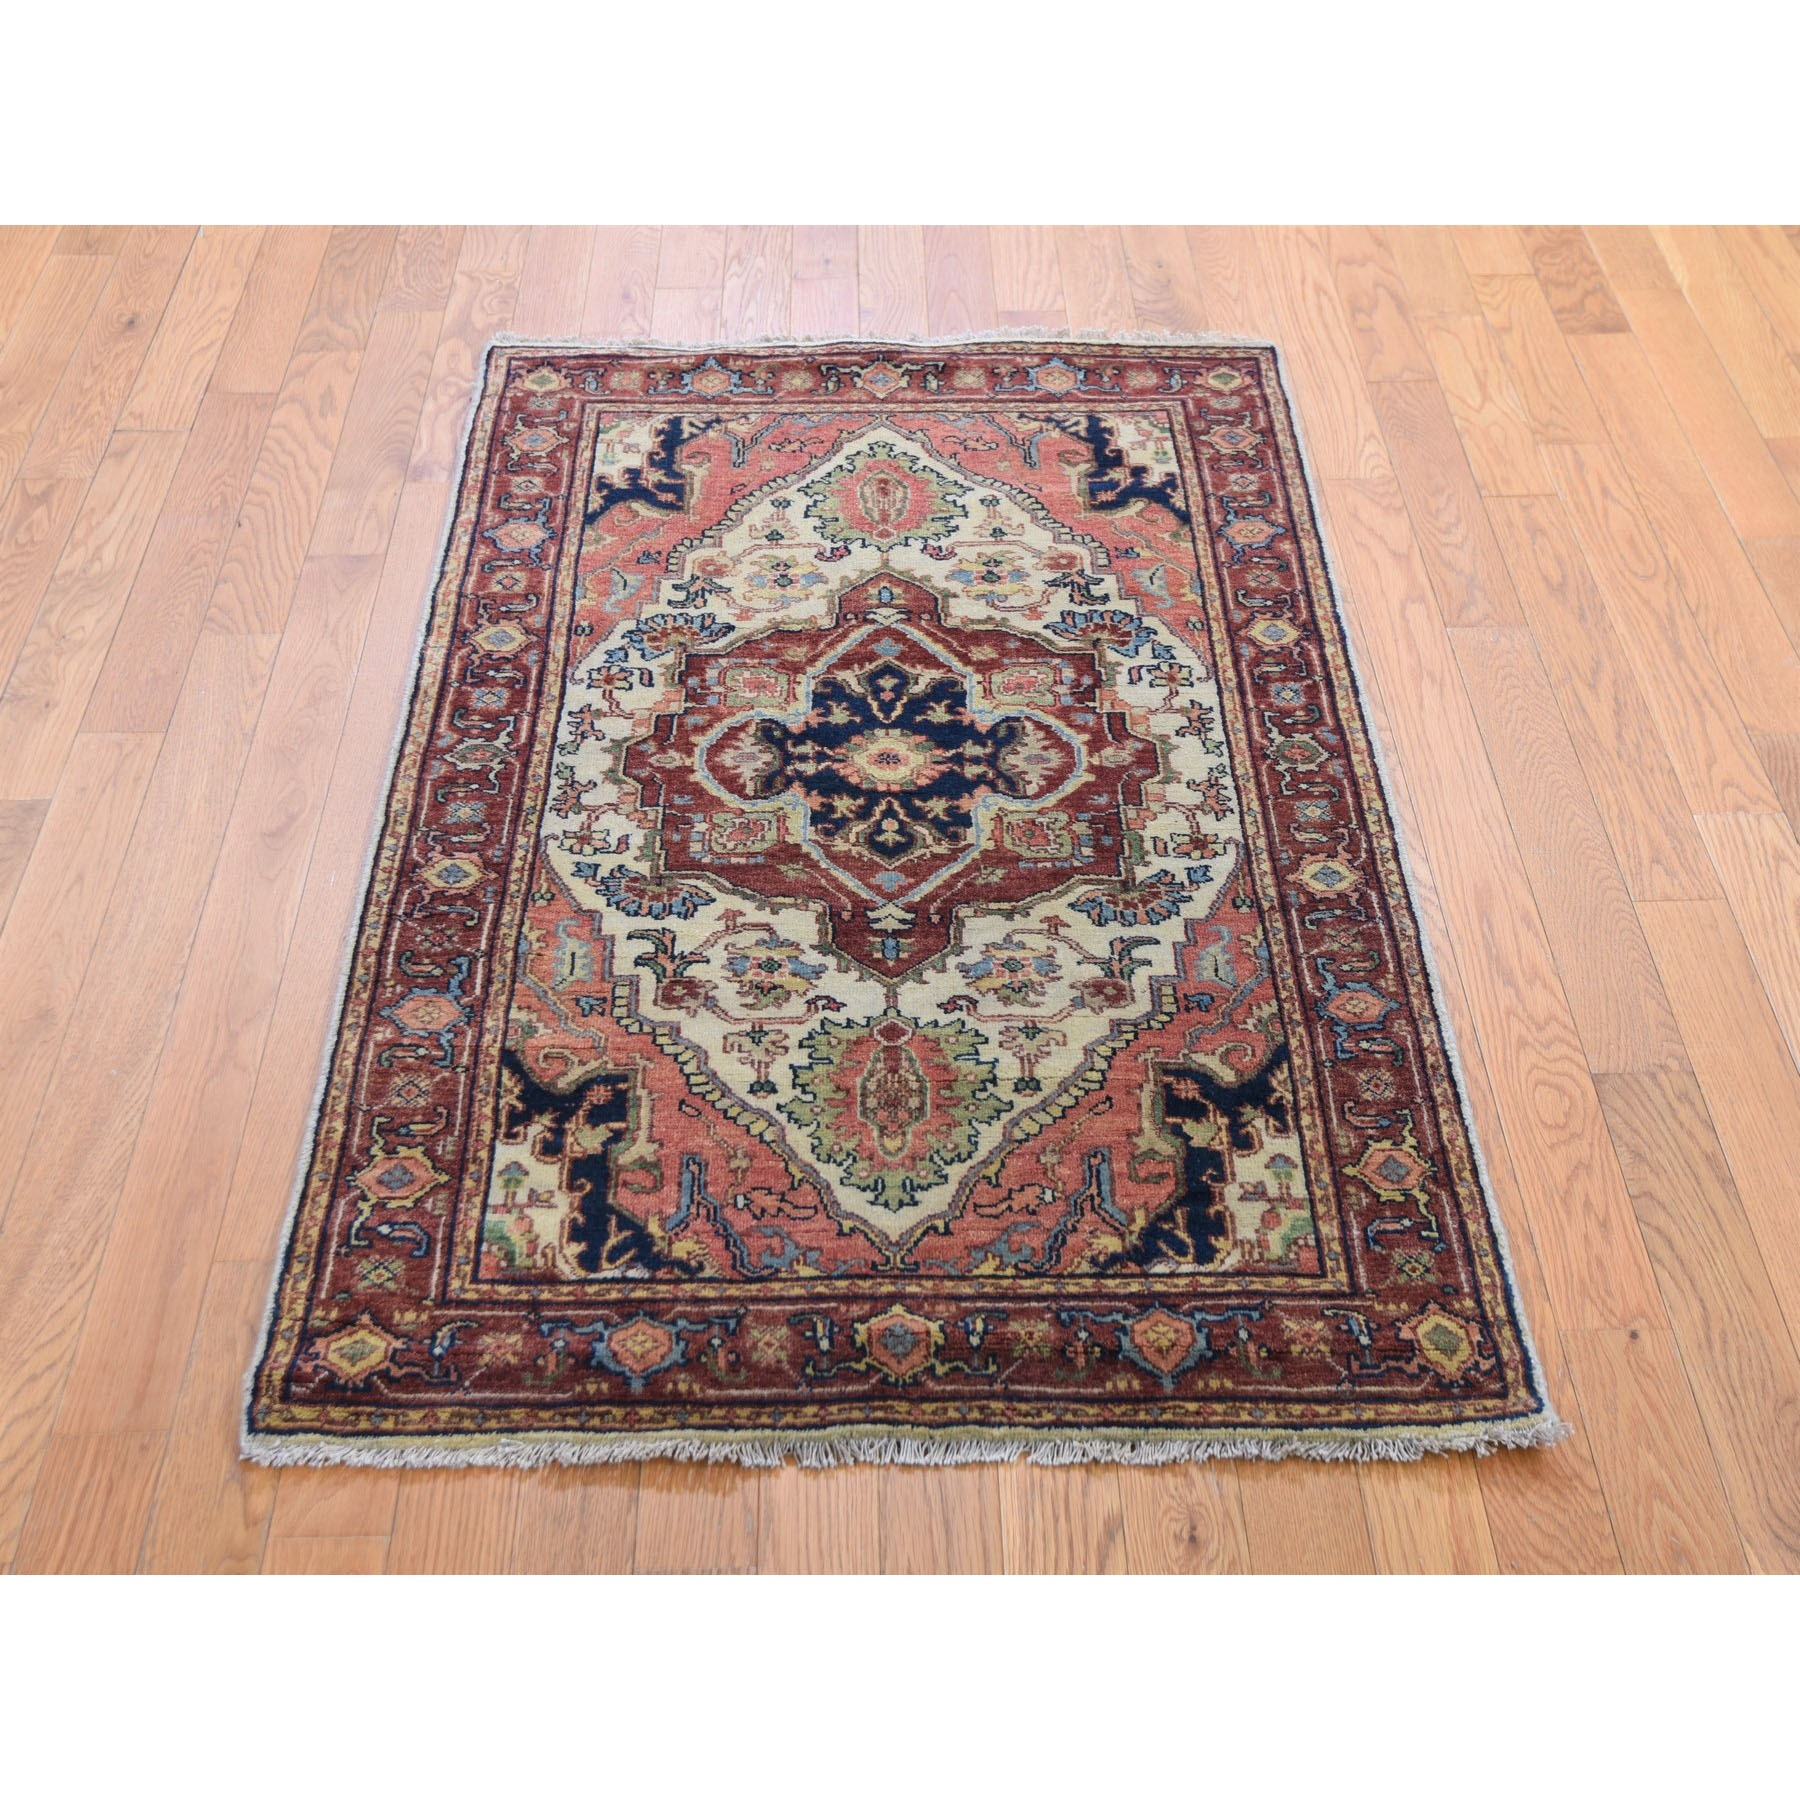 "3'x5'1"" Antiqued Heriz Re-Creation Hand Knotted Pure Wool Oriental Rug"